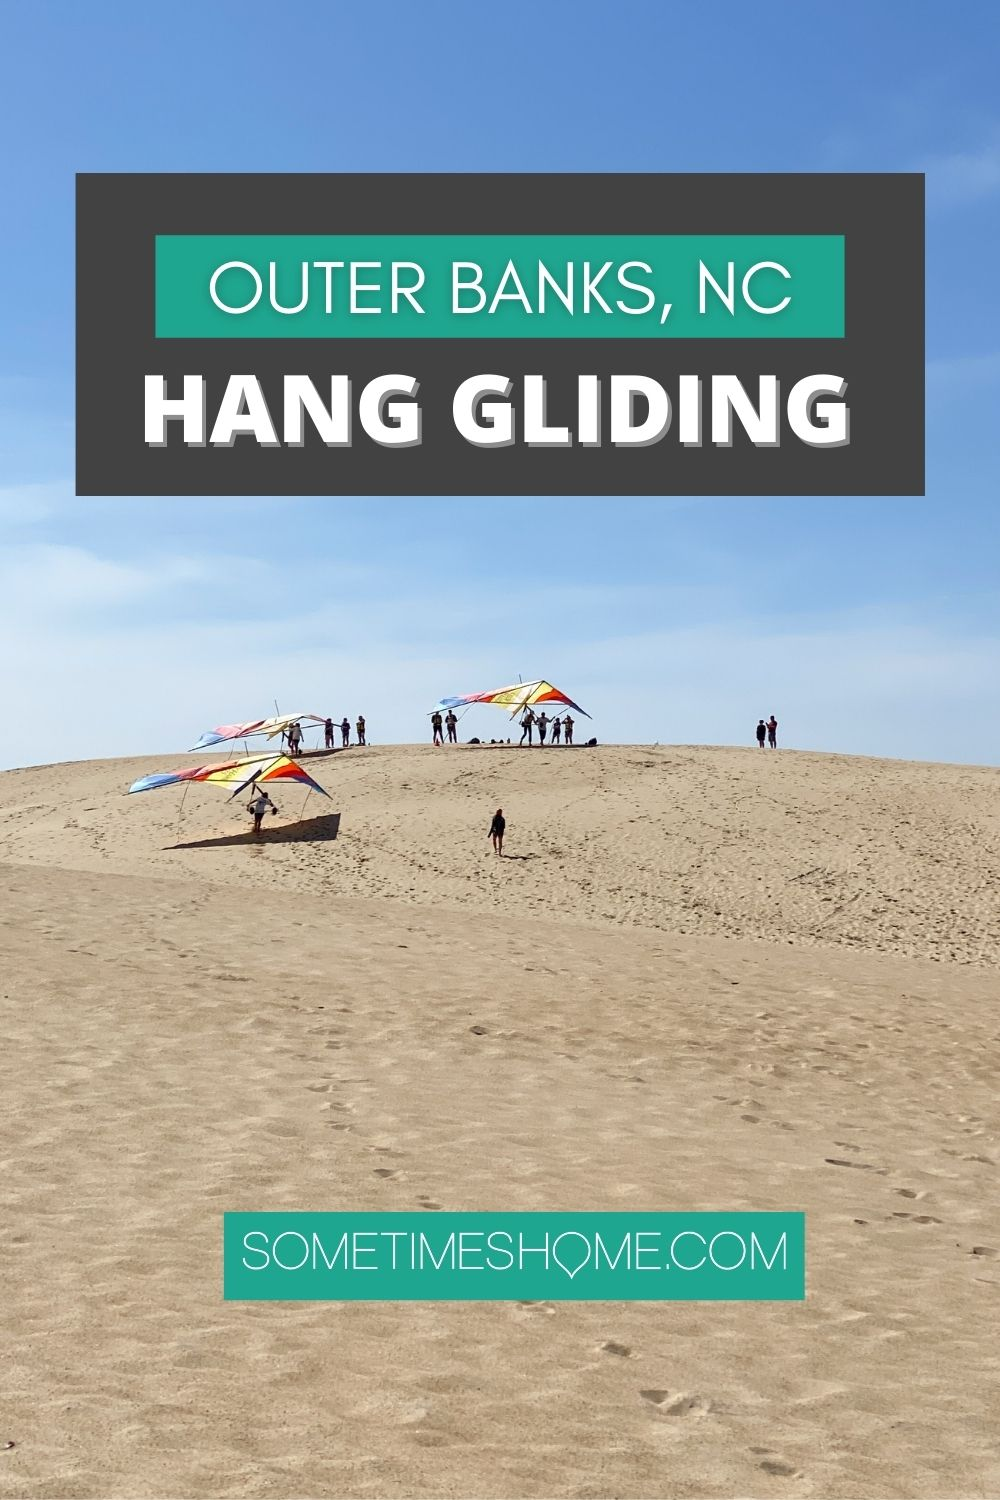 Hang Gliding in the Outer Banks of North Carolina Pinterest image with a photo of hang gliders and sand dunes behind the text.